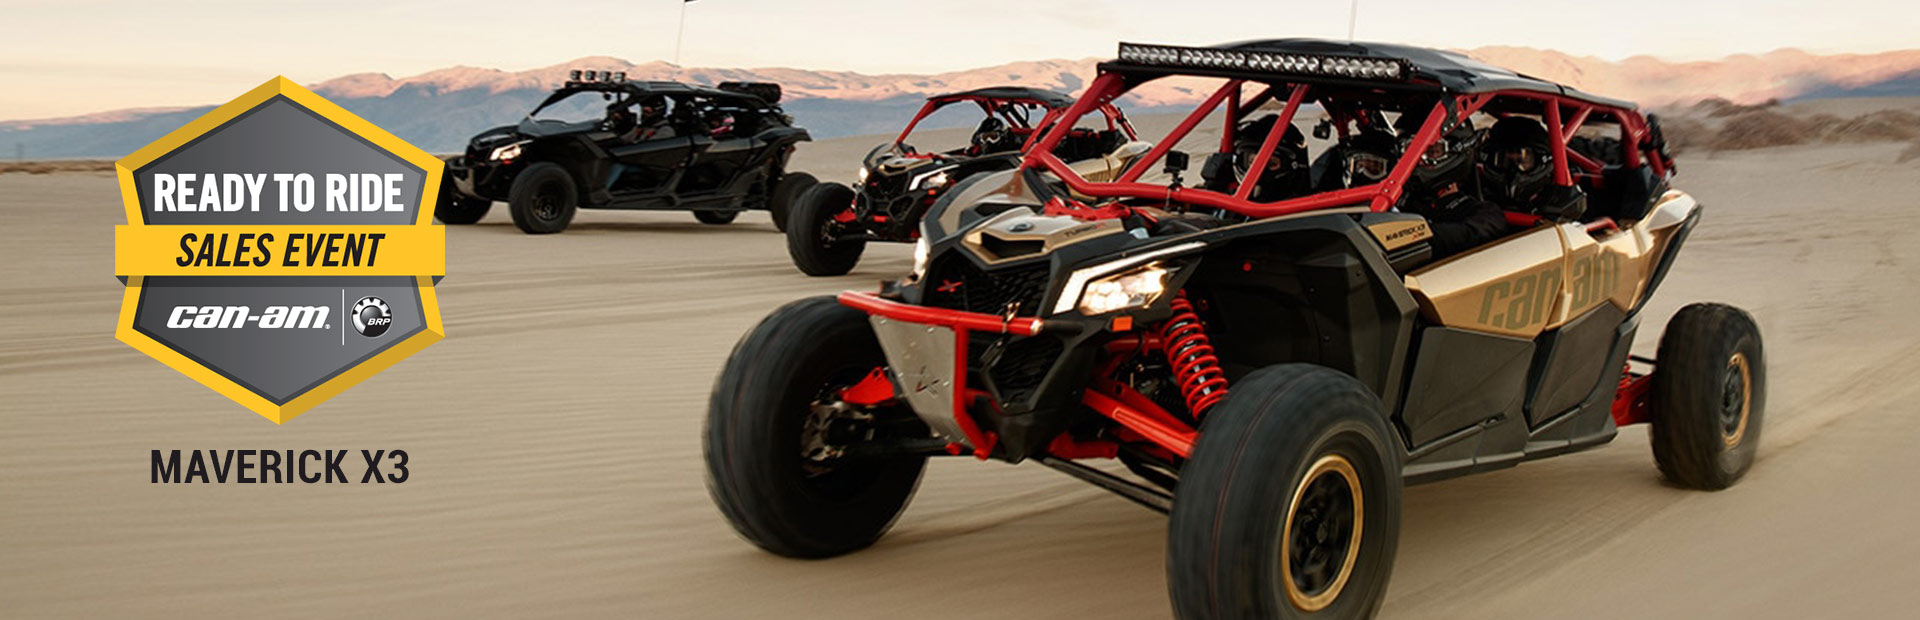 Can-Am: Ready to Ride Sales Event - MAVERICK X3